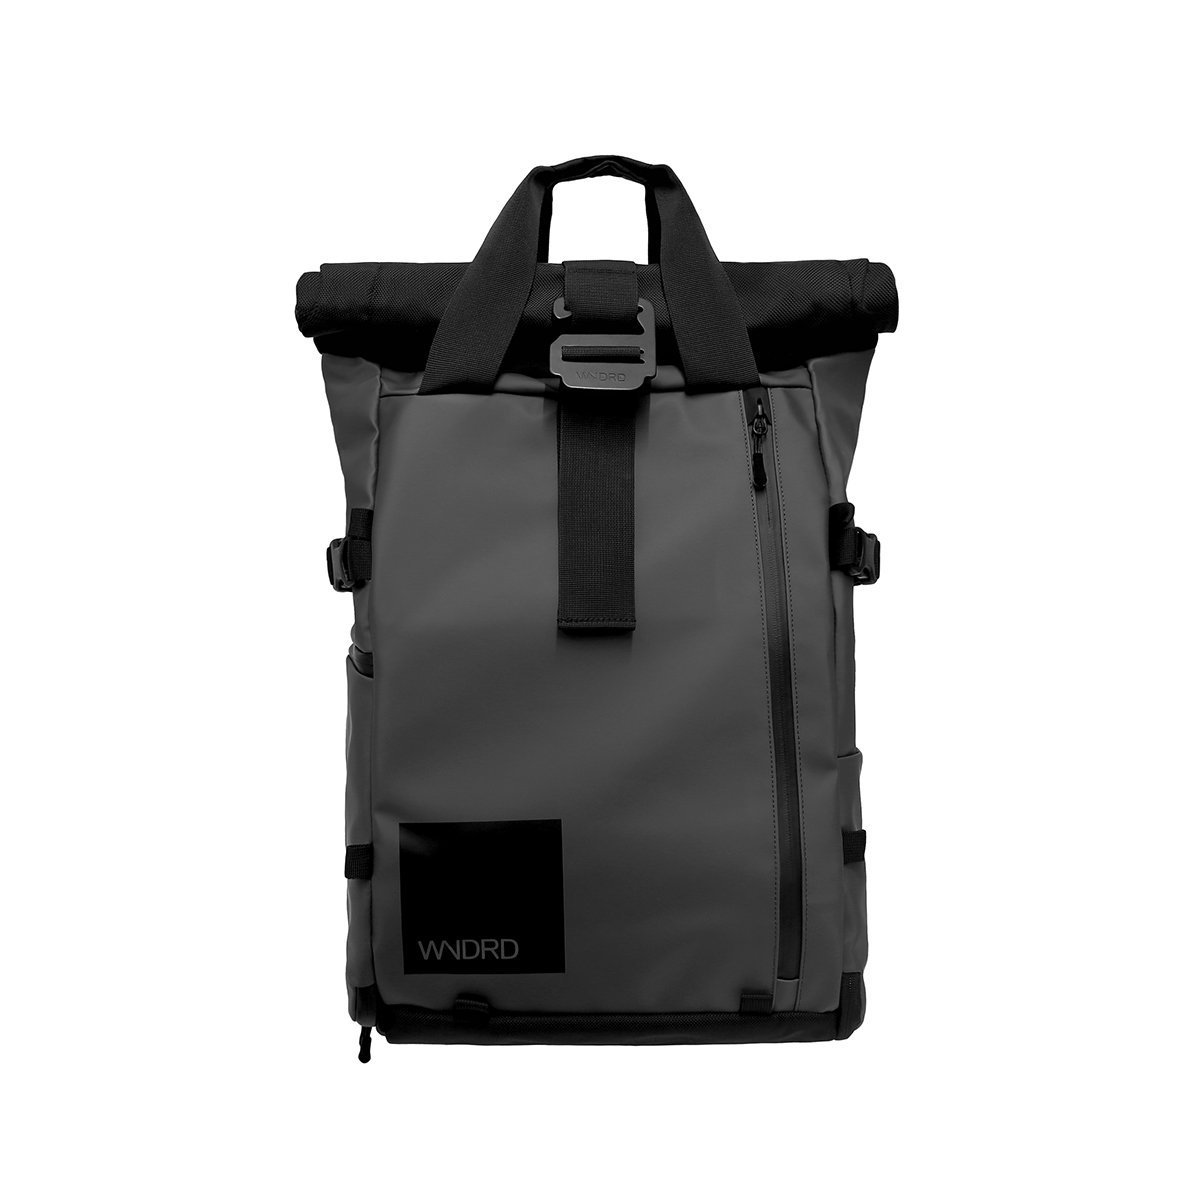 PRVKE Travel and DSLR Camera Backpack with Laptop/Tablet Sleeve and Rain Cover. Rugged Photography Bag. (21L, Black)